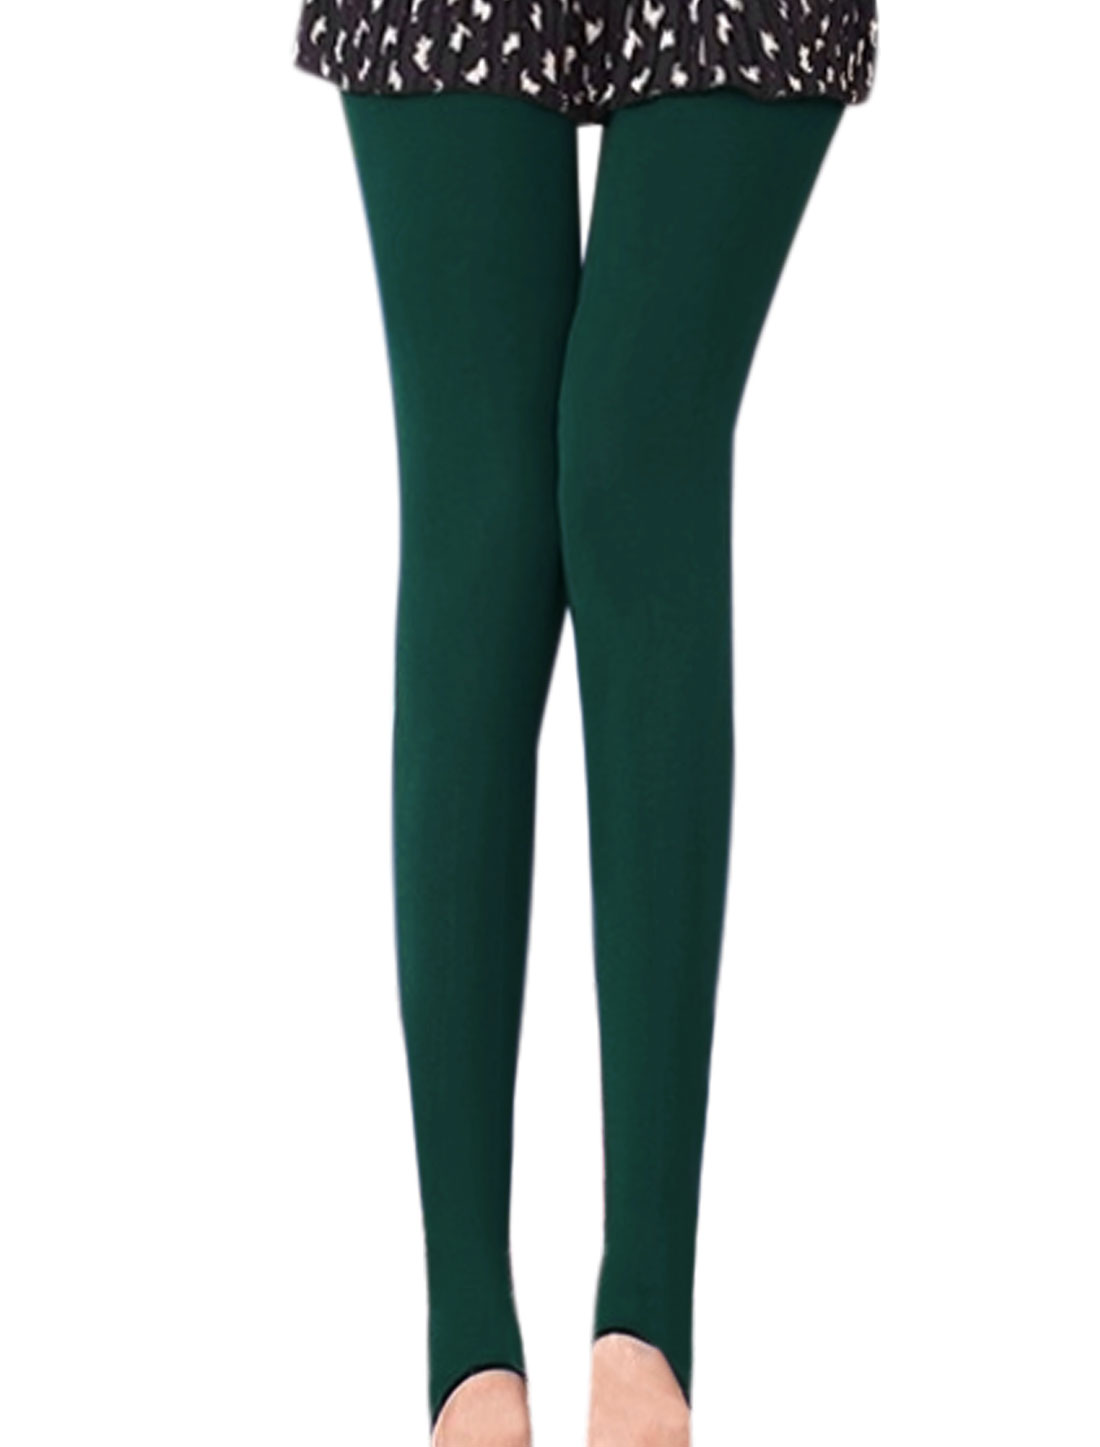 Autumn Wear Stirrup Design Dusty Green Reversible Pantyhose for Ladies XS